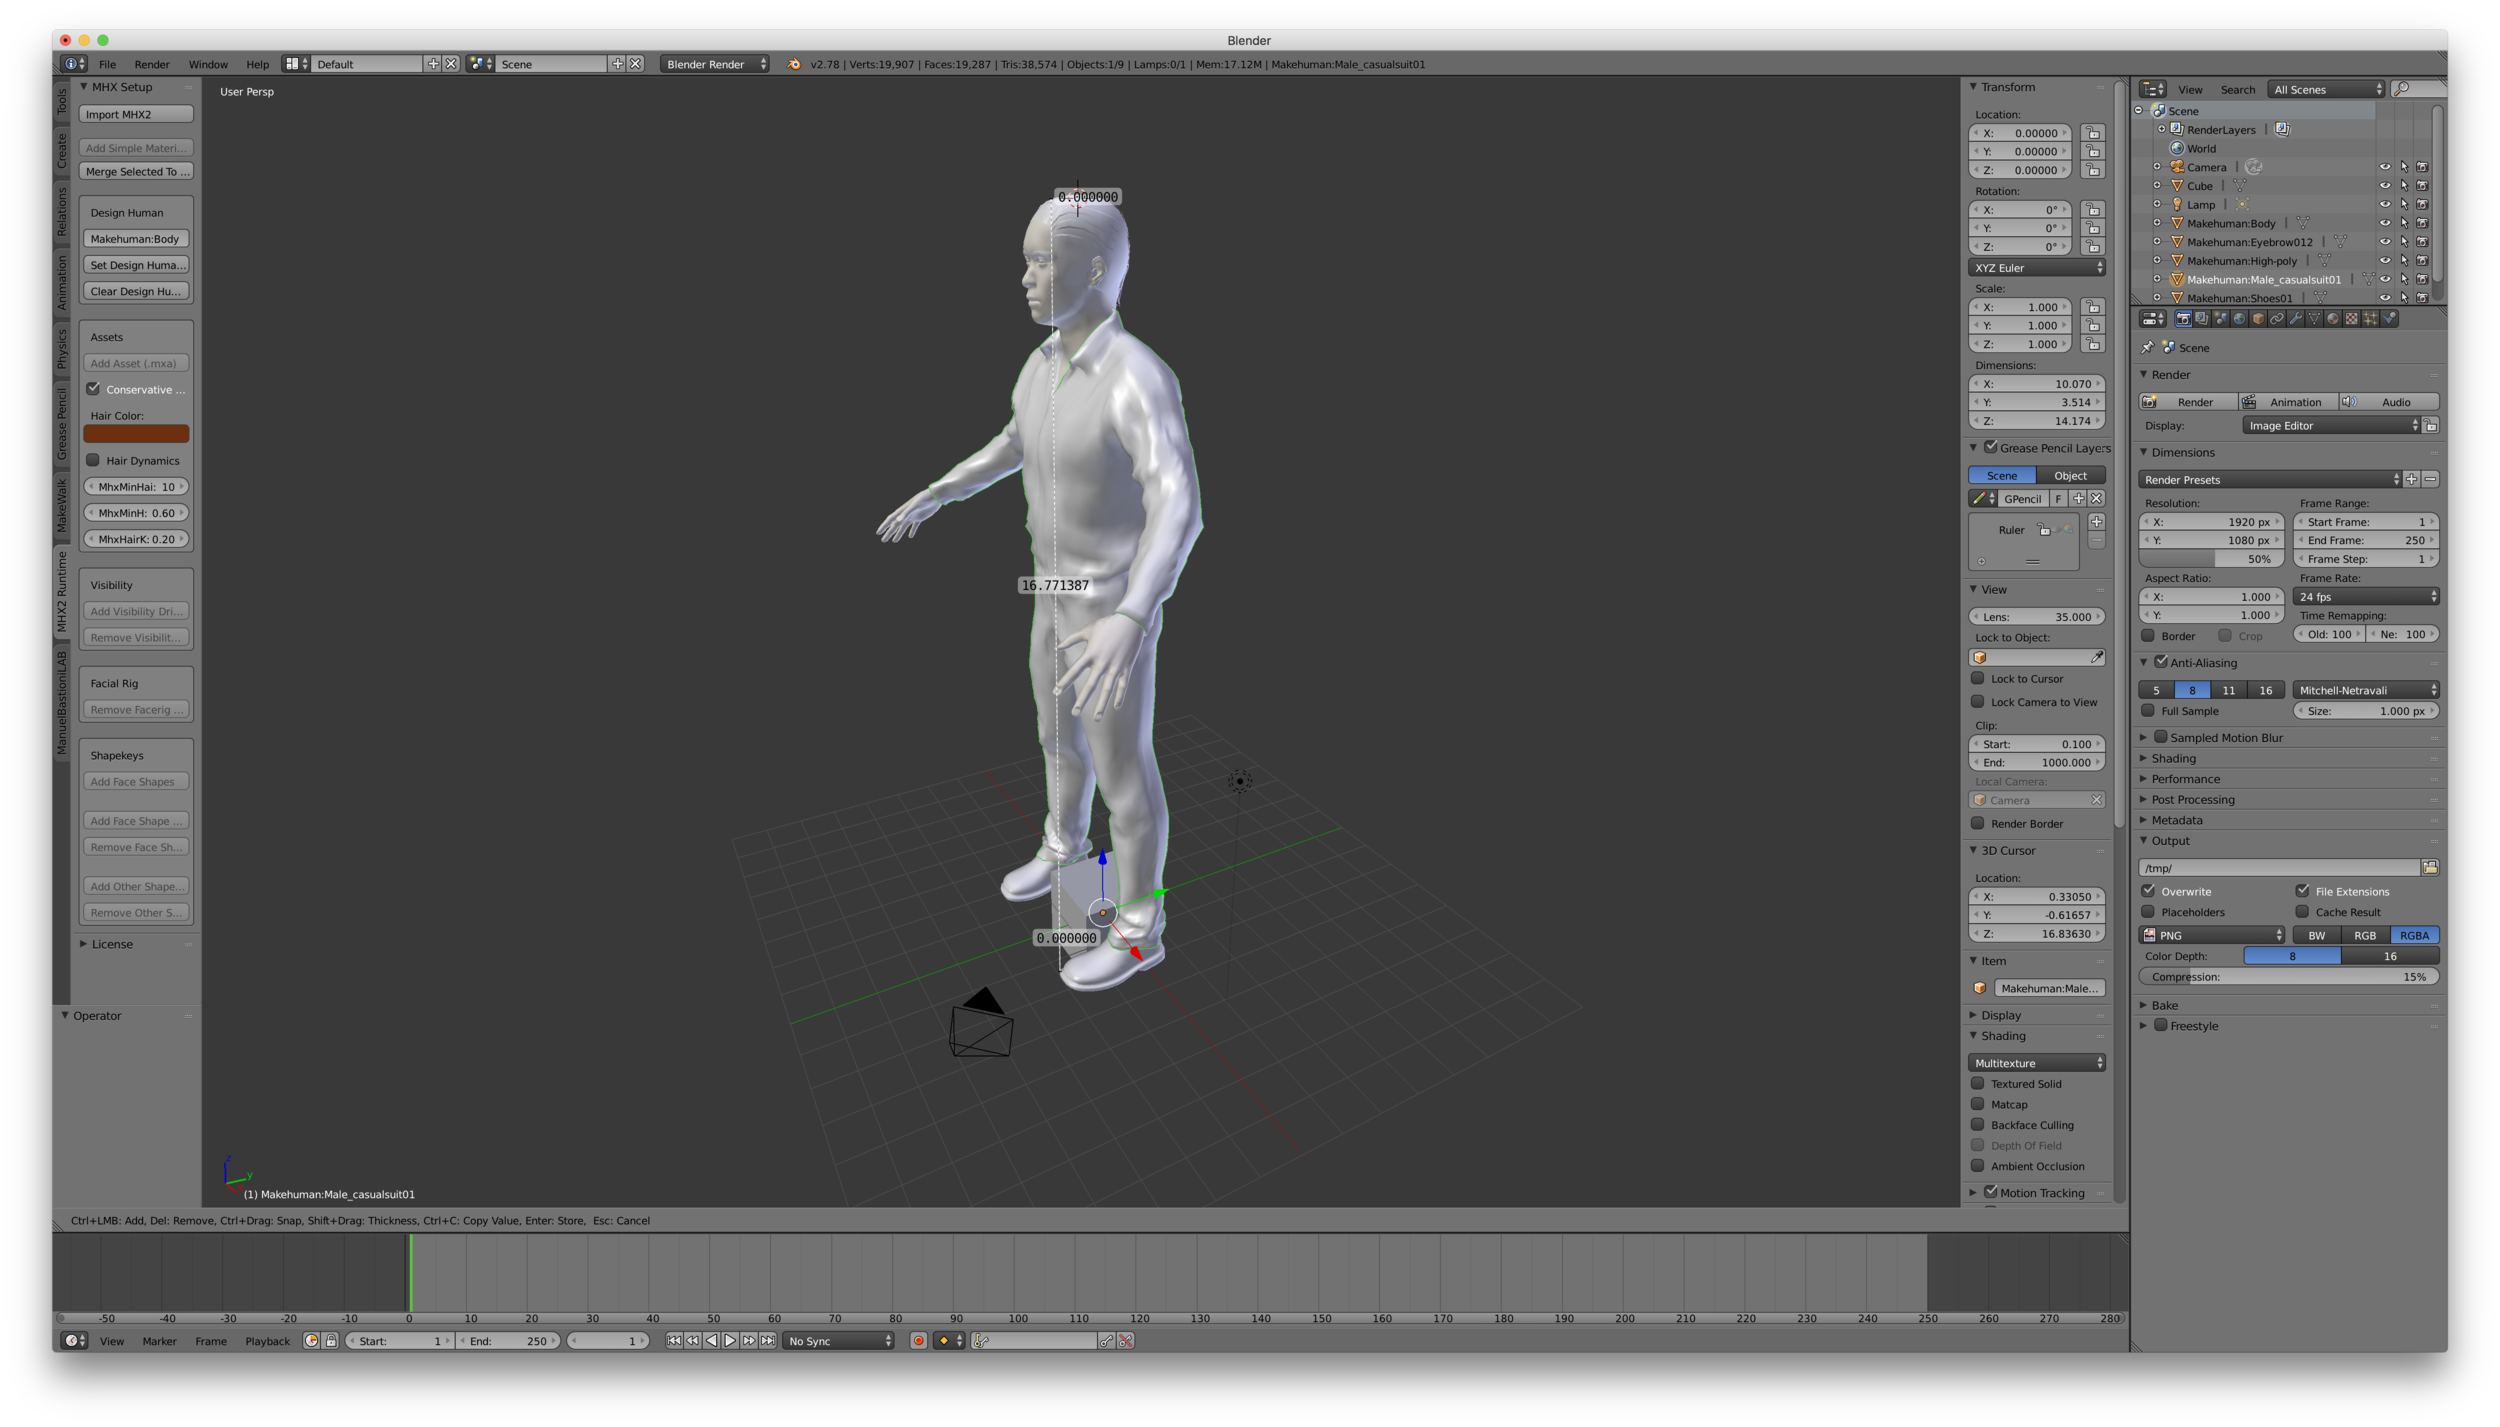 The model was imported at 16.869 Blender units instead of decimeters